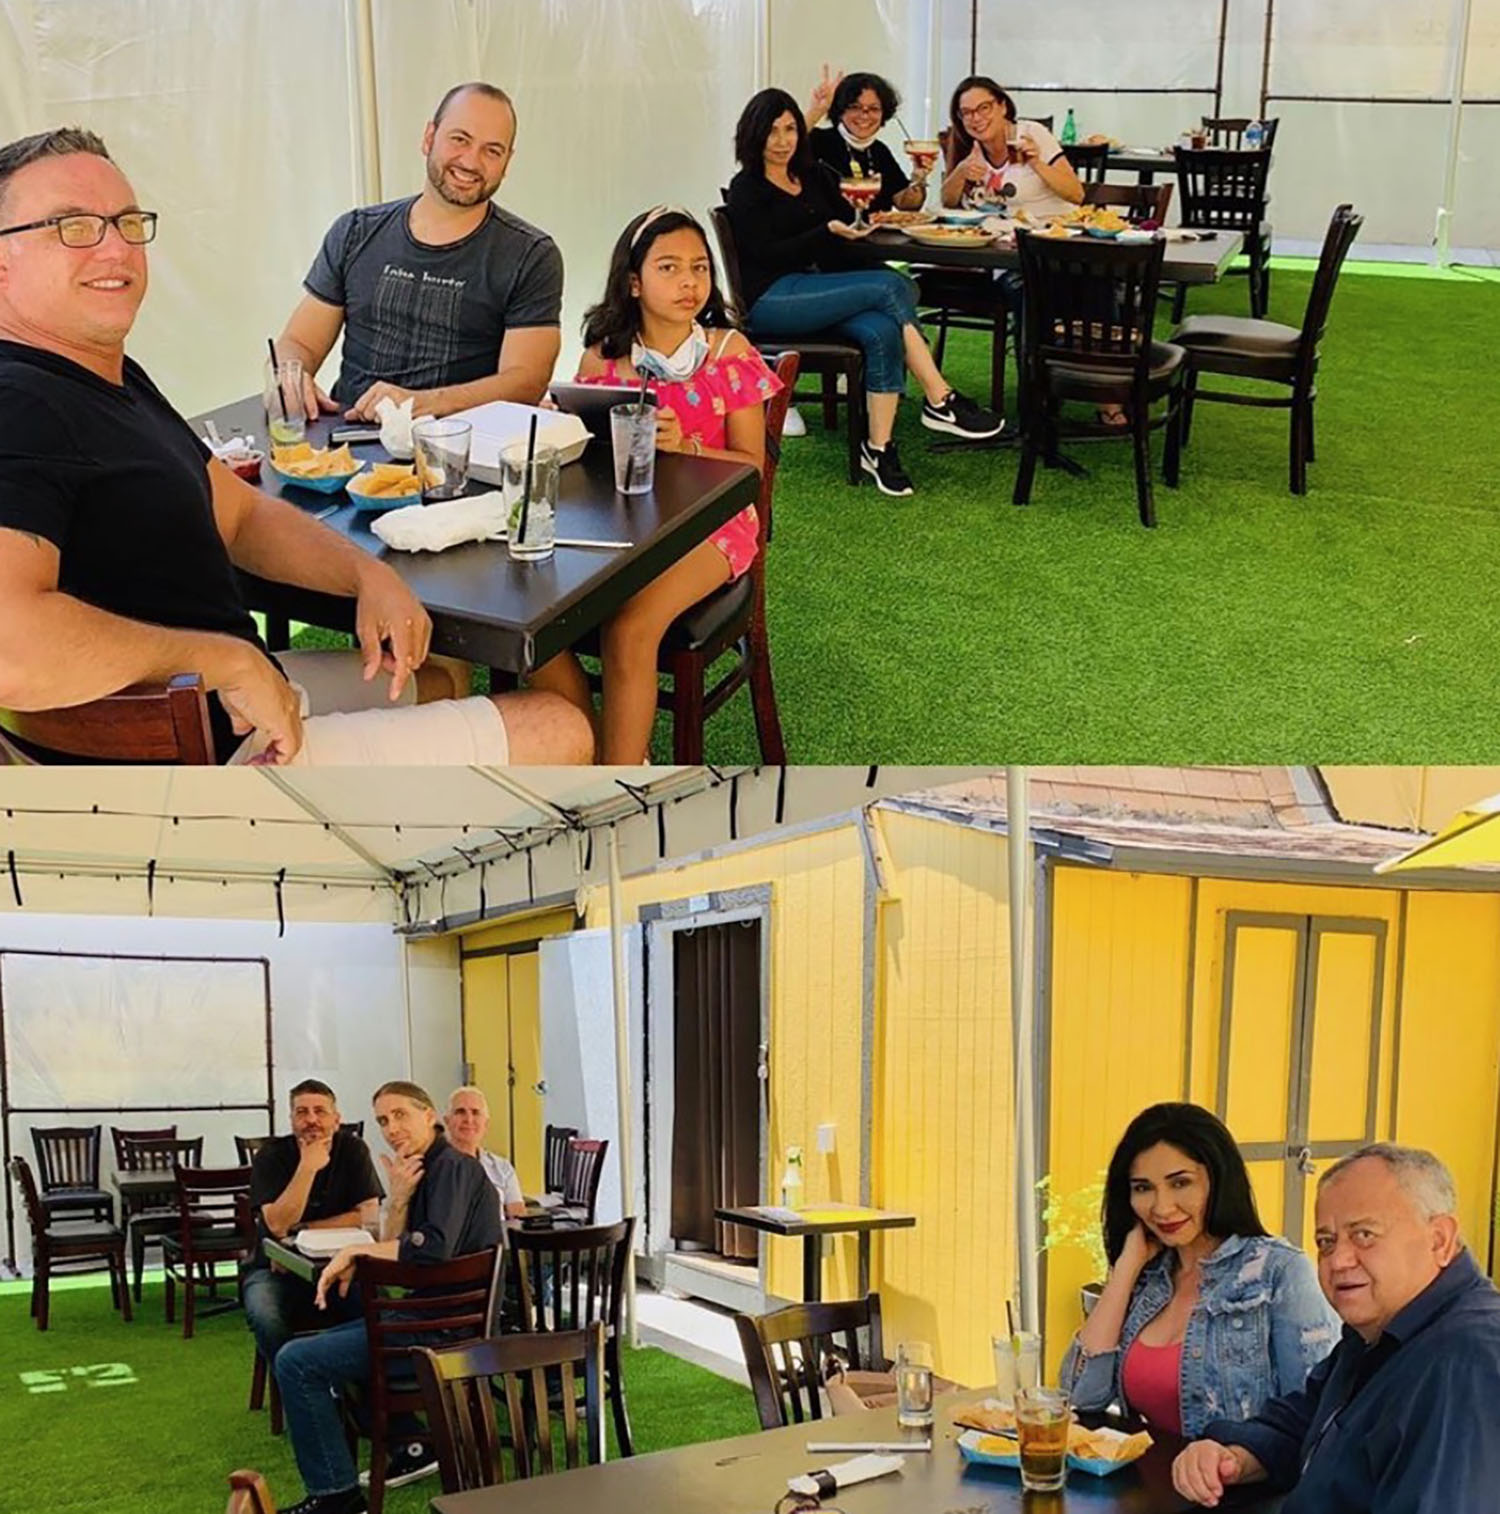 outdoor-dining-canopies-happy-people-eating